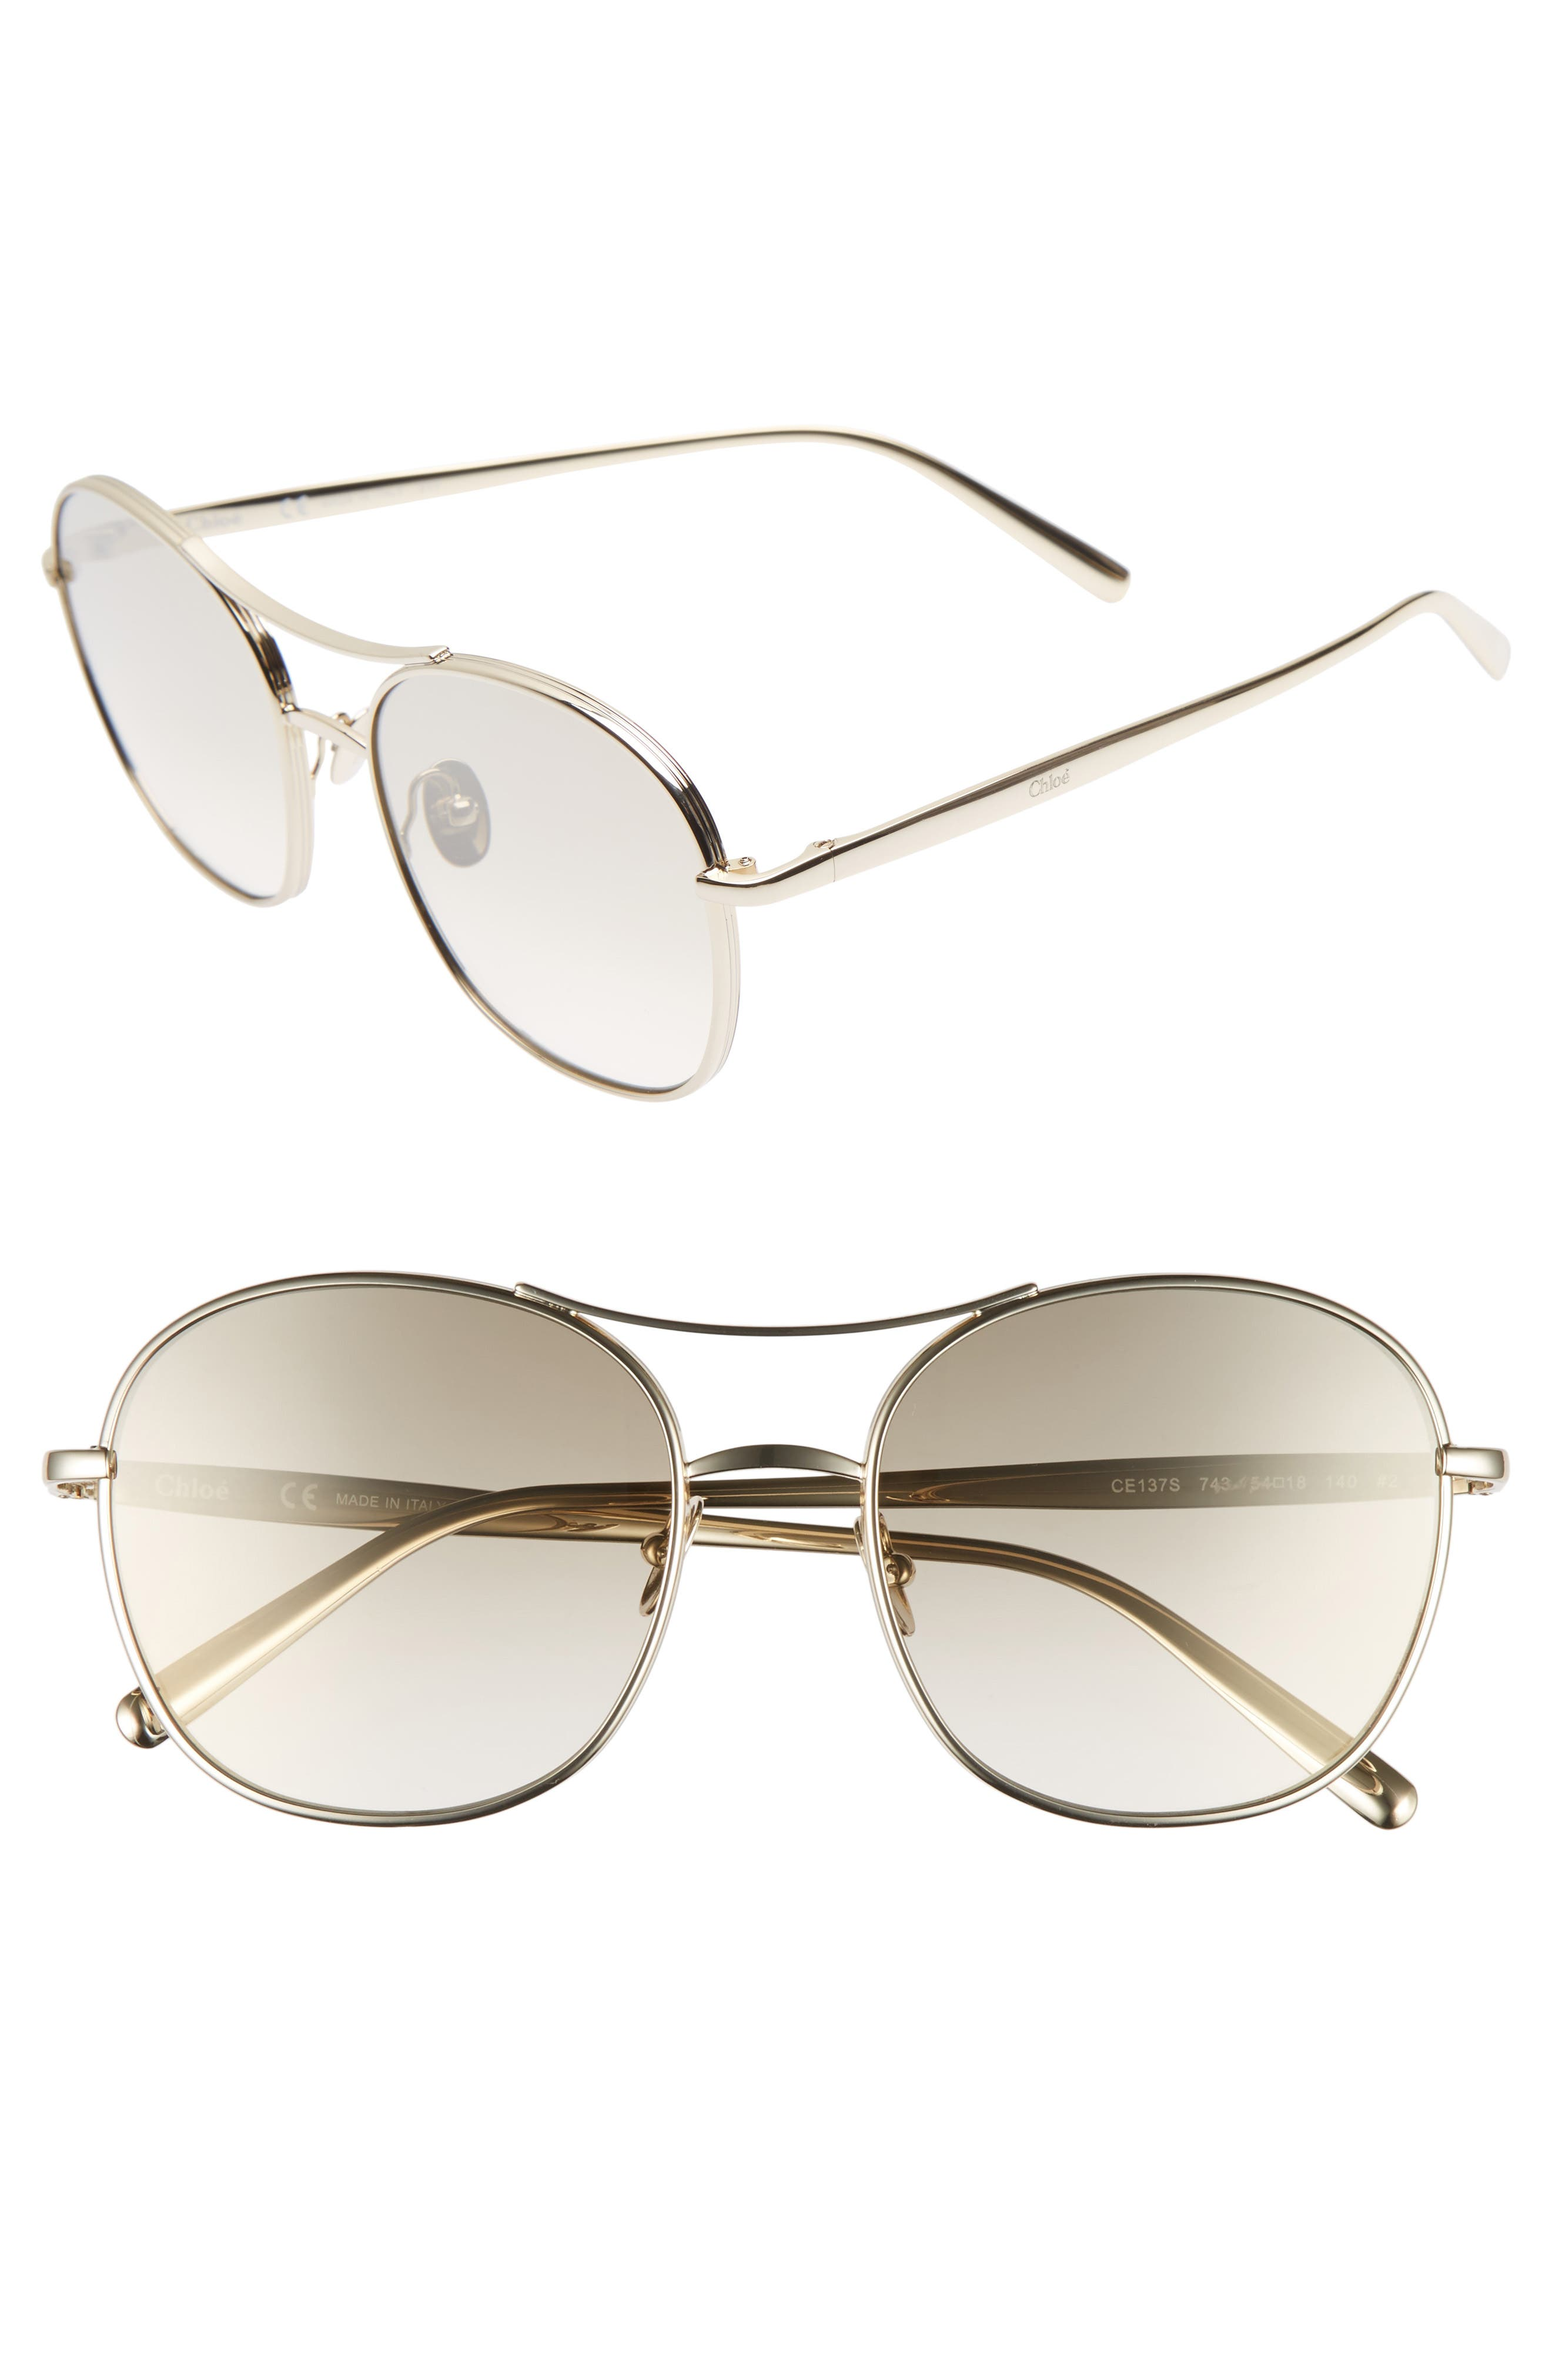 Alternate Image 1 Selected - Chloé 54mm Aviator Sunglasses